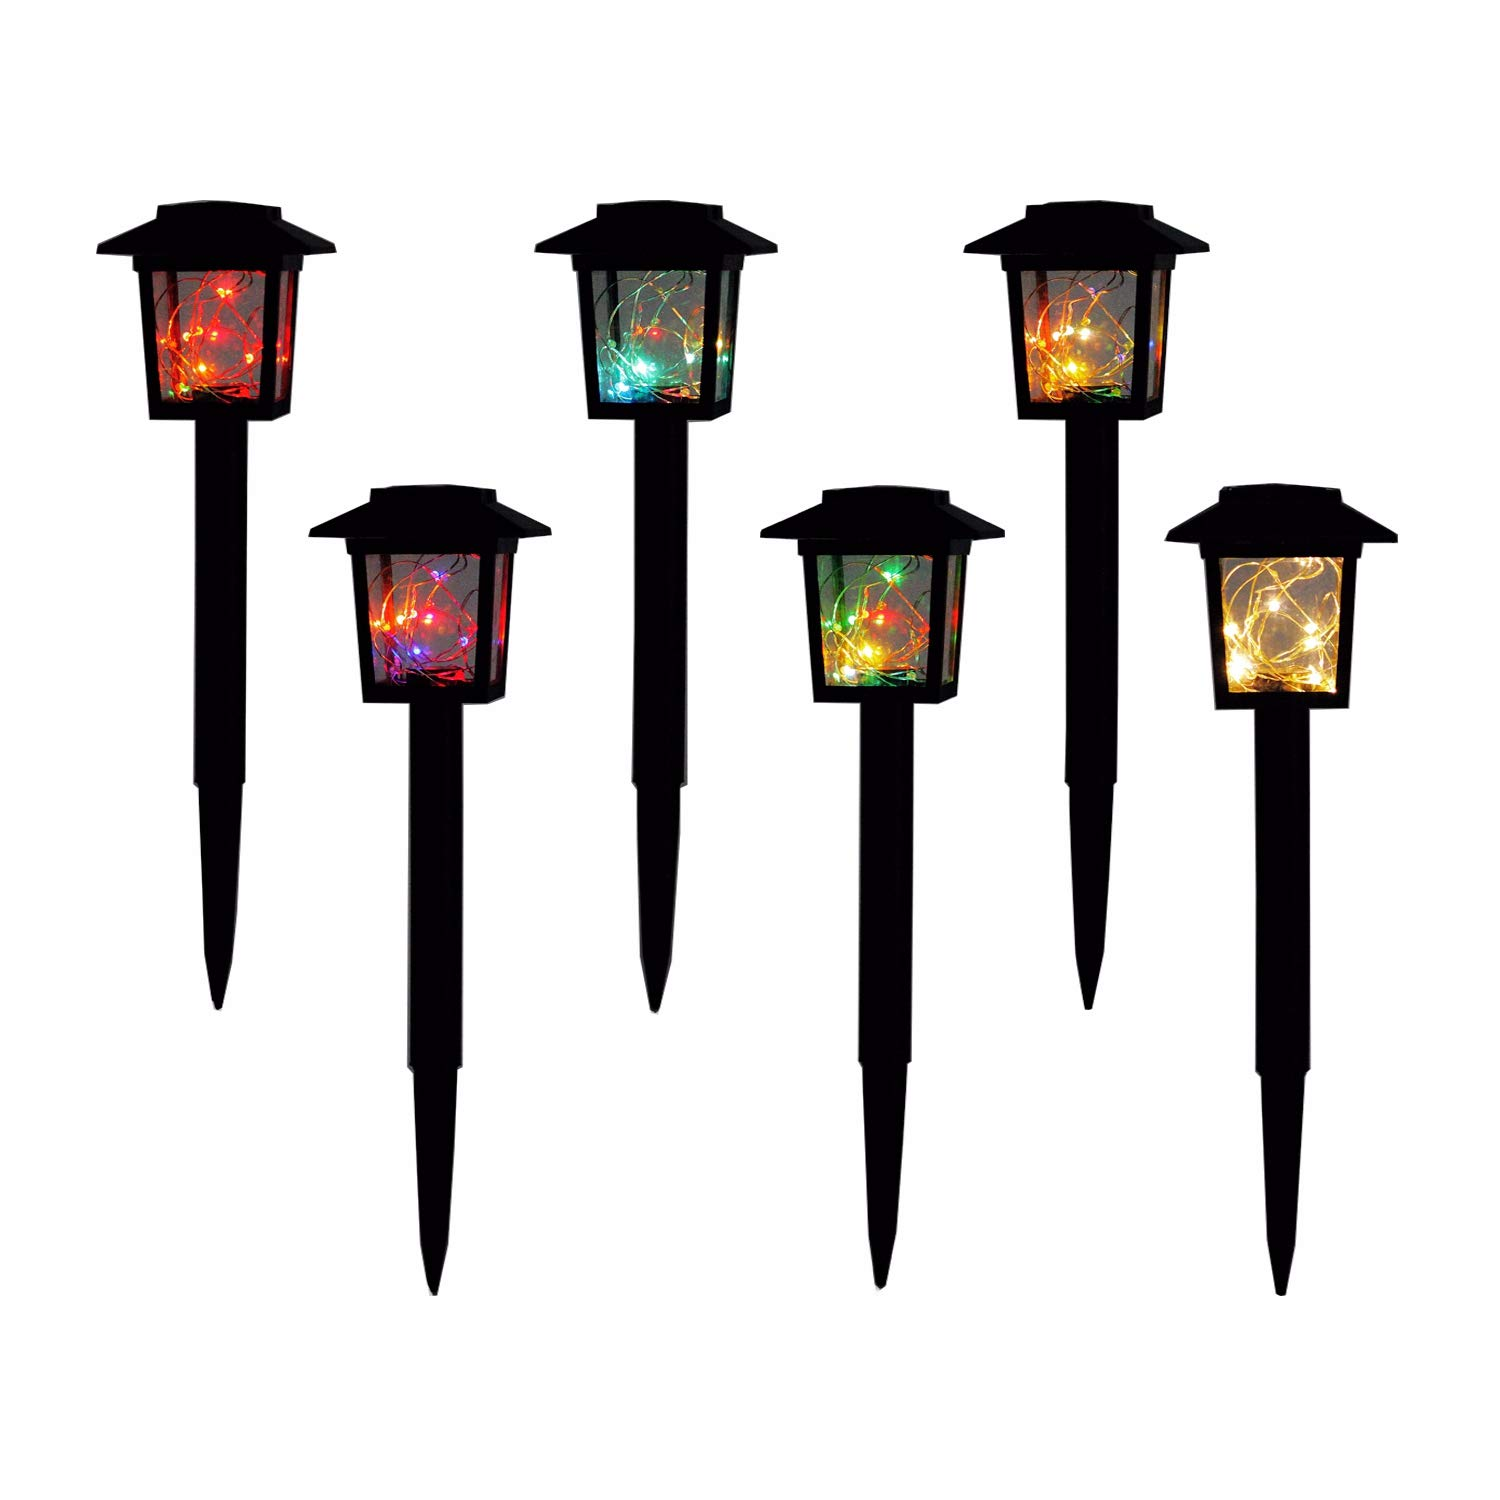 Molcoeur 6 Pack Solar Garden Lights Waterproof Solar Lights Outdoor Solar Stake Landscape Lighting for Pathway Patio Lawn Yard Driveway Wkway(Warm White/Color Changing) by Molcoeur